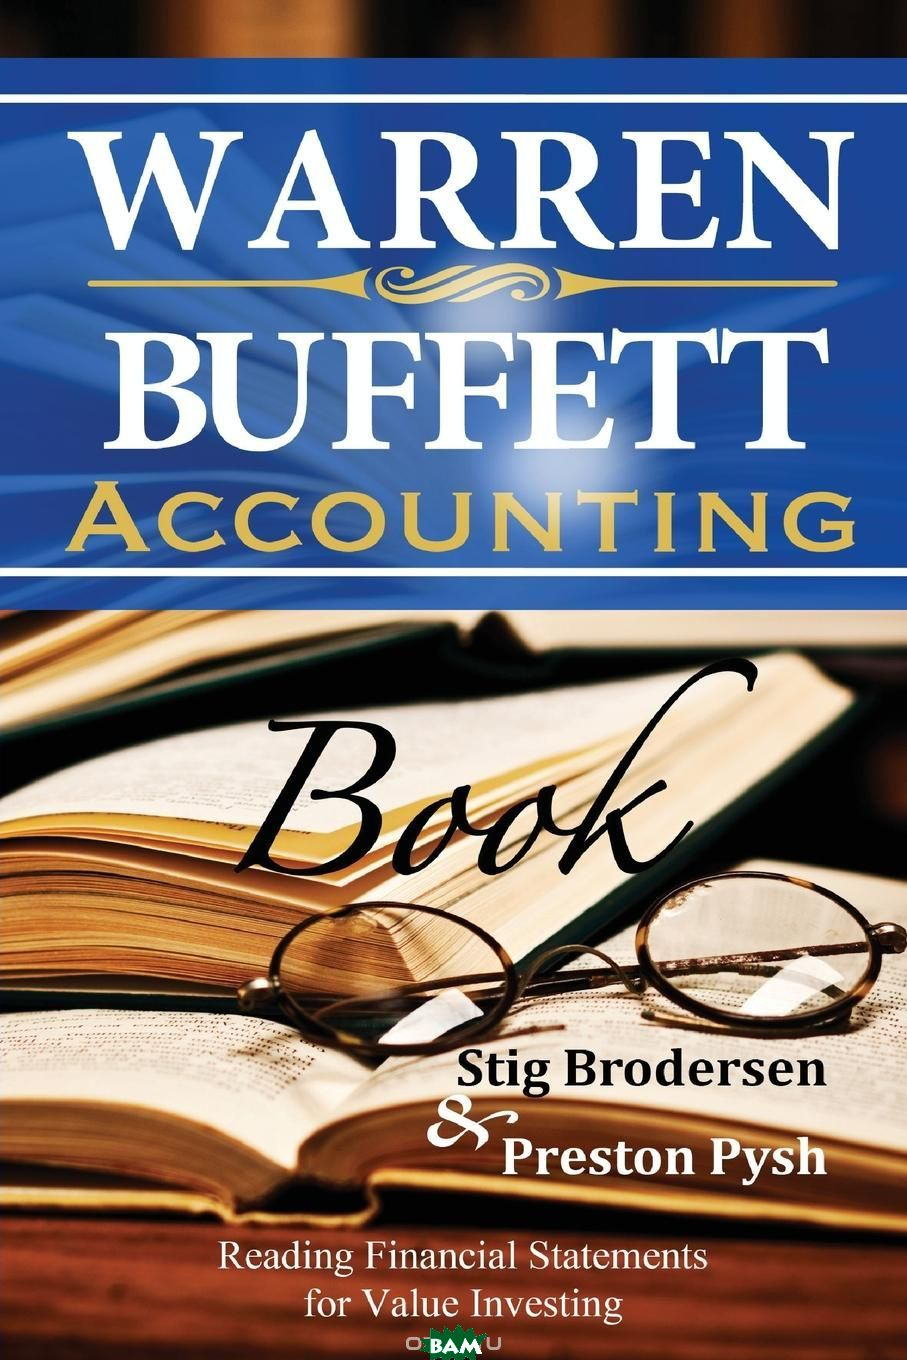 Warren Buffett Accounting Book. Reading Financial Statements for Value Investing